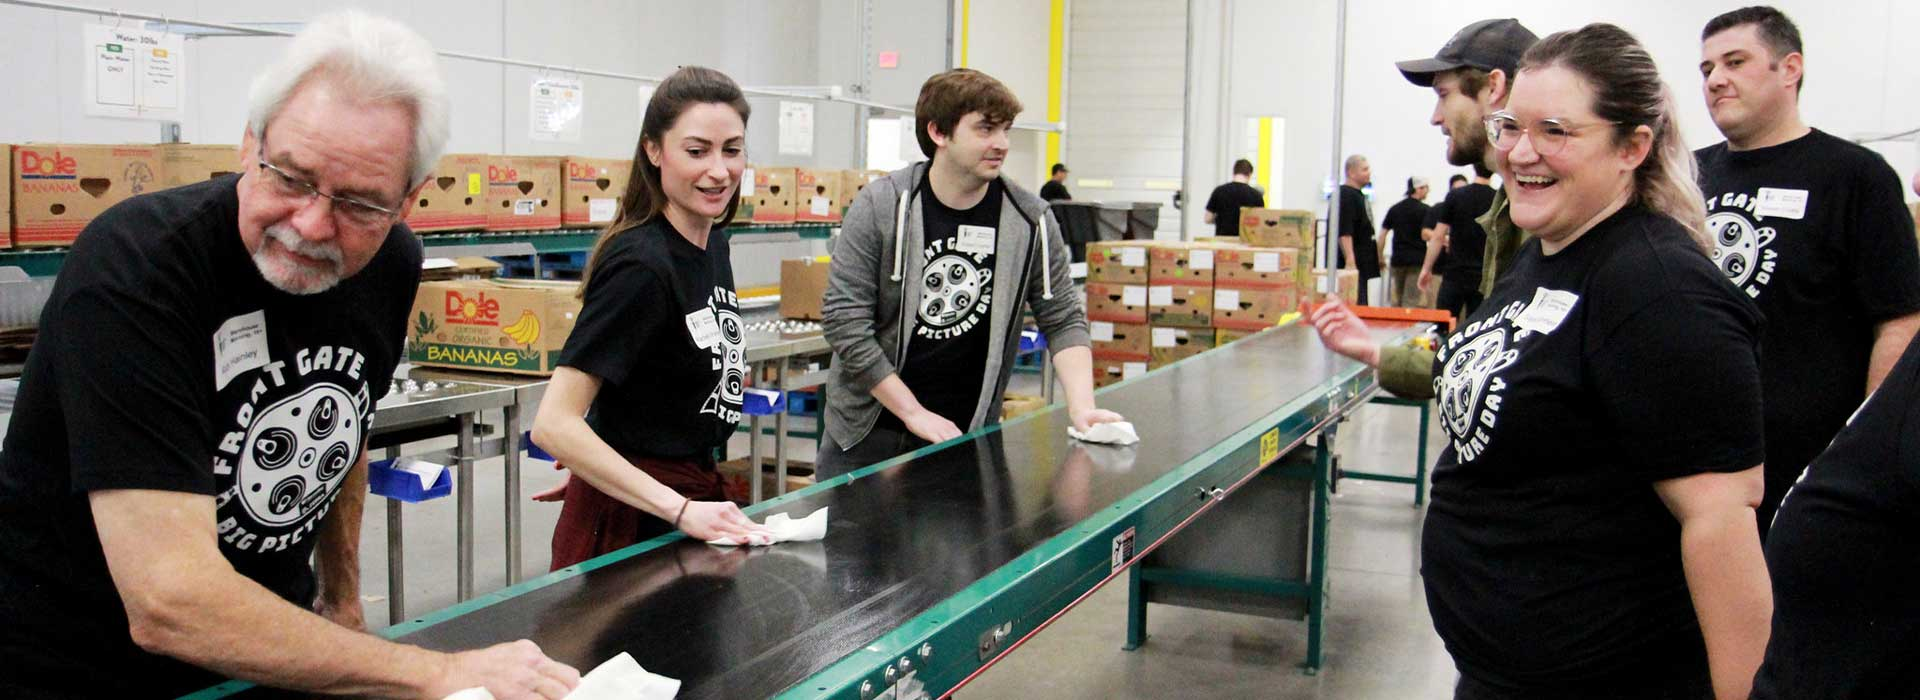 barcoding_cleaning_belt_at_food_bank